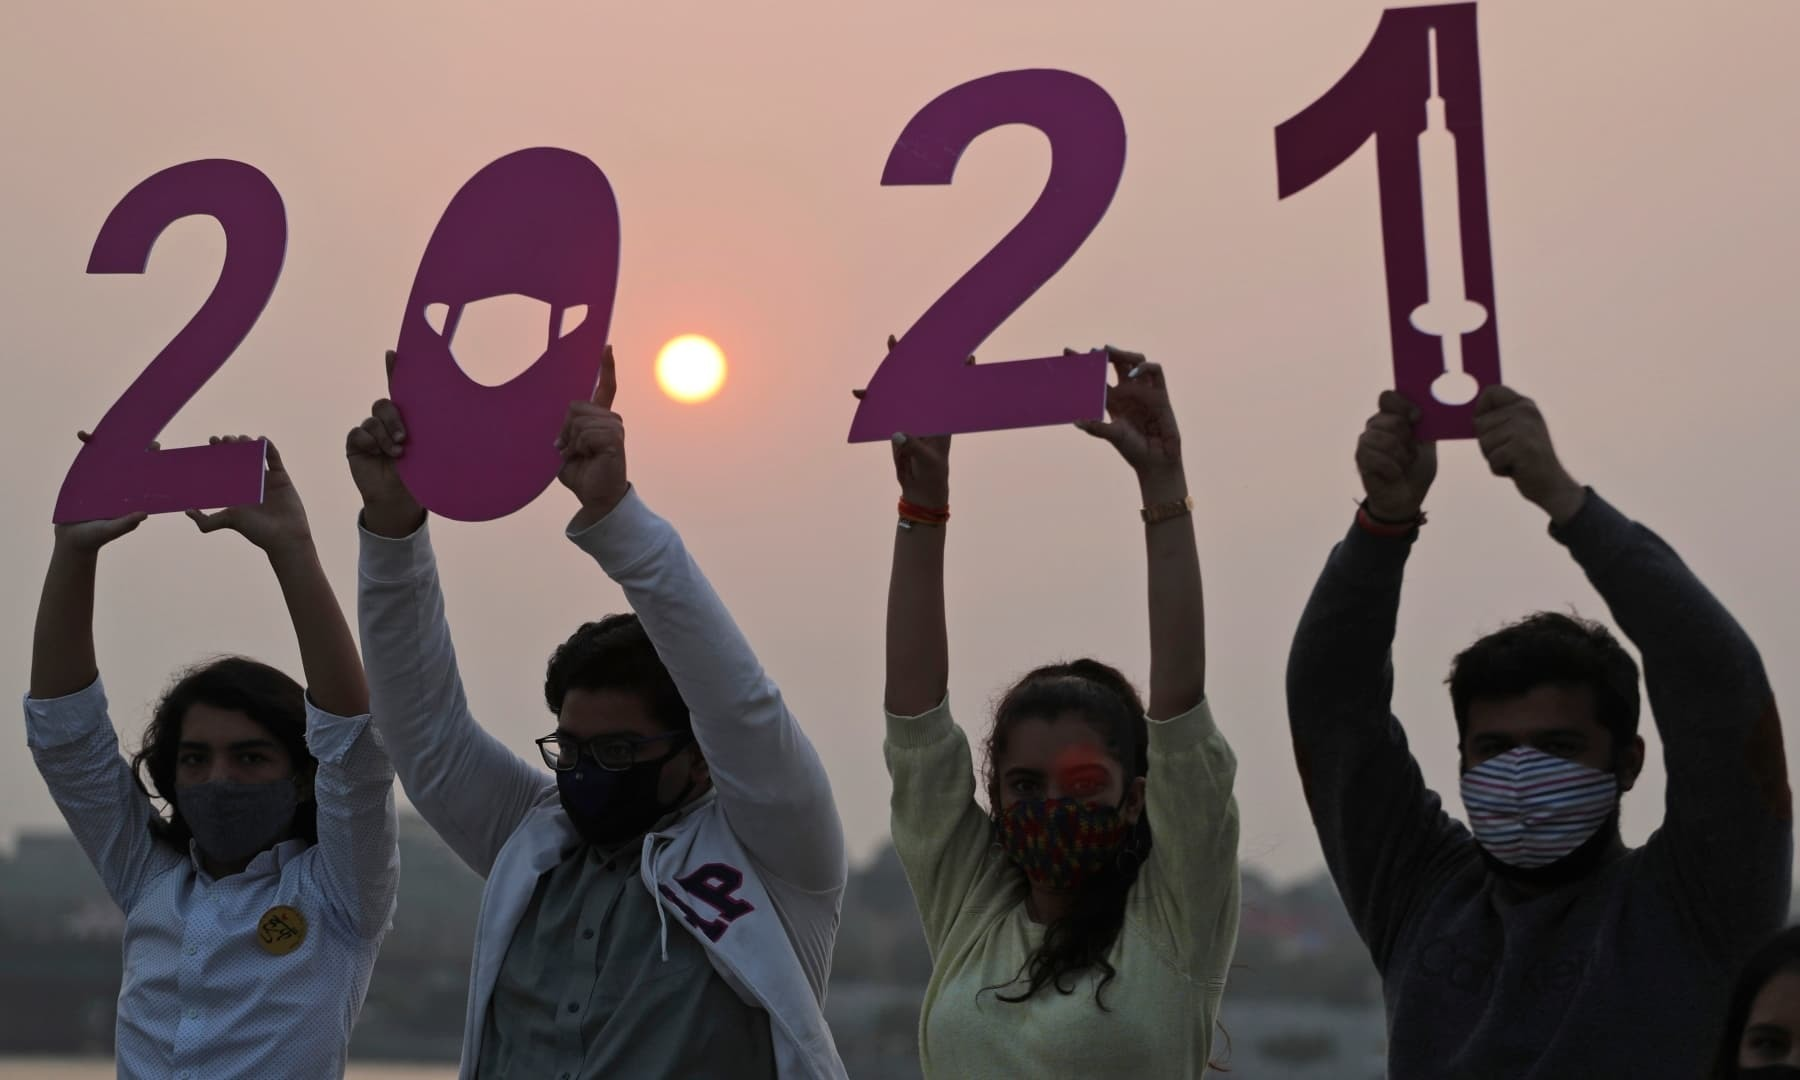 Indians hold cutouts welcoming 2021 on New Year's Eve in Ahmedabad, India, Thursday. — AP/File